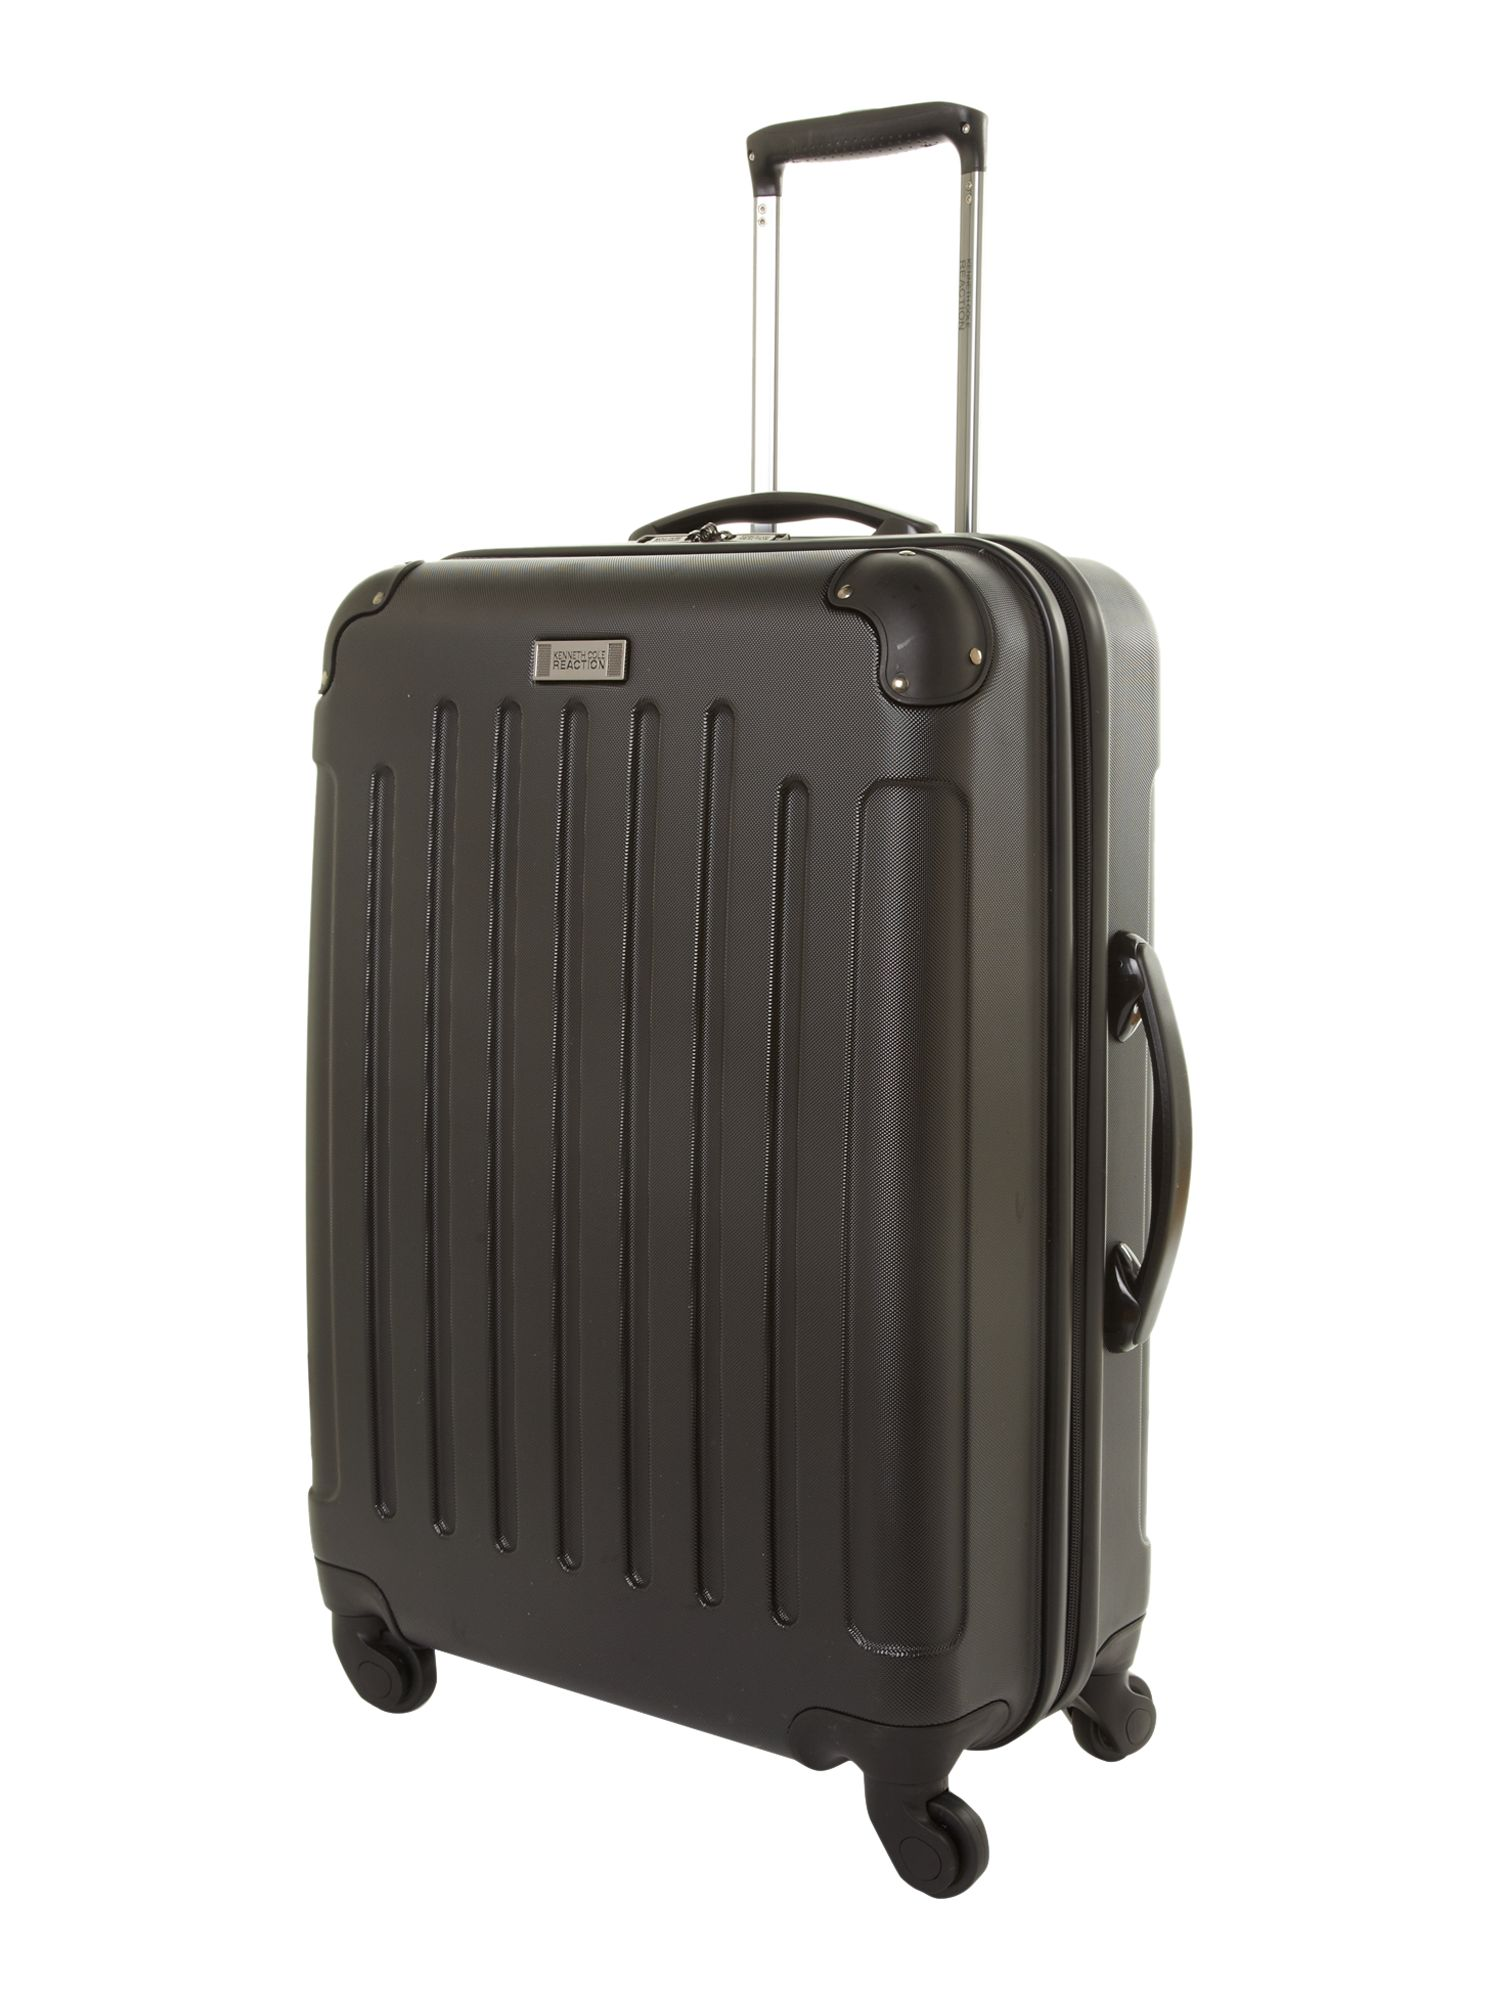 Renegade Medium 4 wheel Suitcase